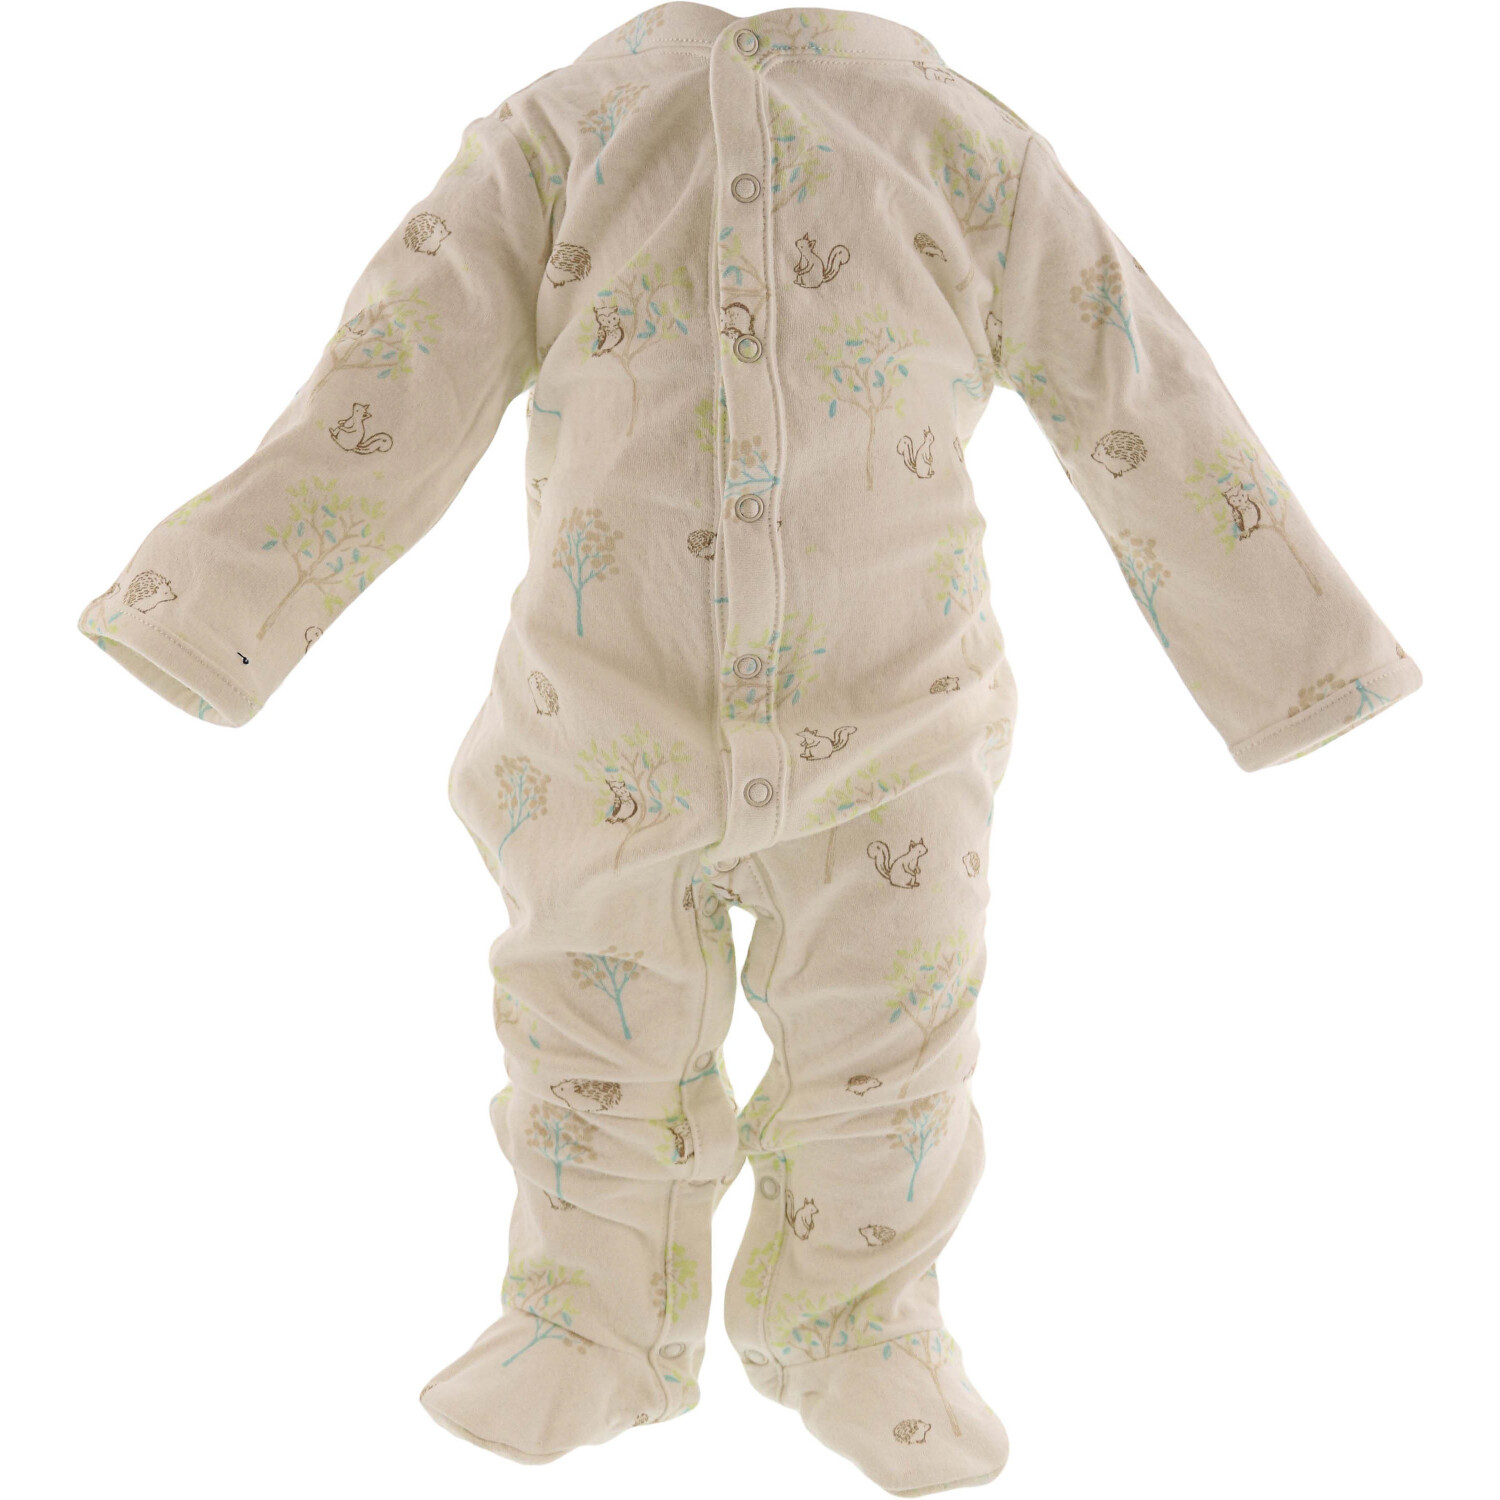 Janie And Jack White / Multicoloured Meadow Print Footed One Piece One-Piece Pajama - 3-6 Months